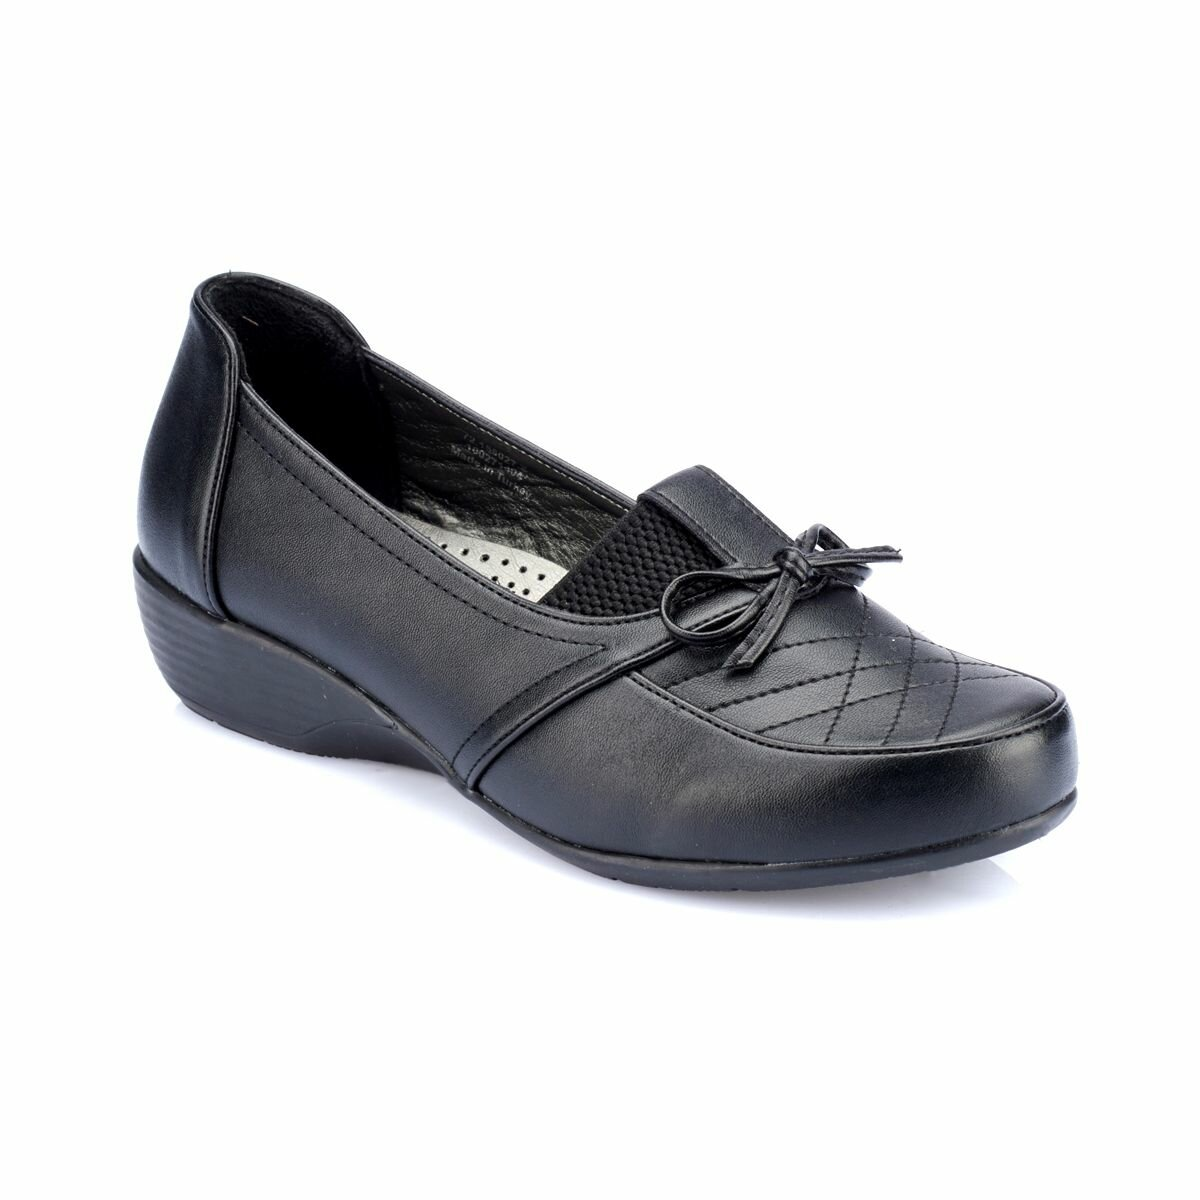 FLO 82.158027.Z Black Women Shoes Polaris